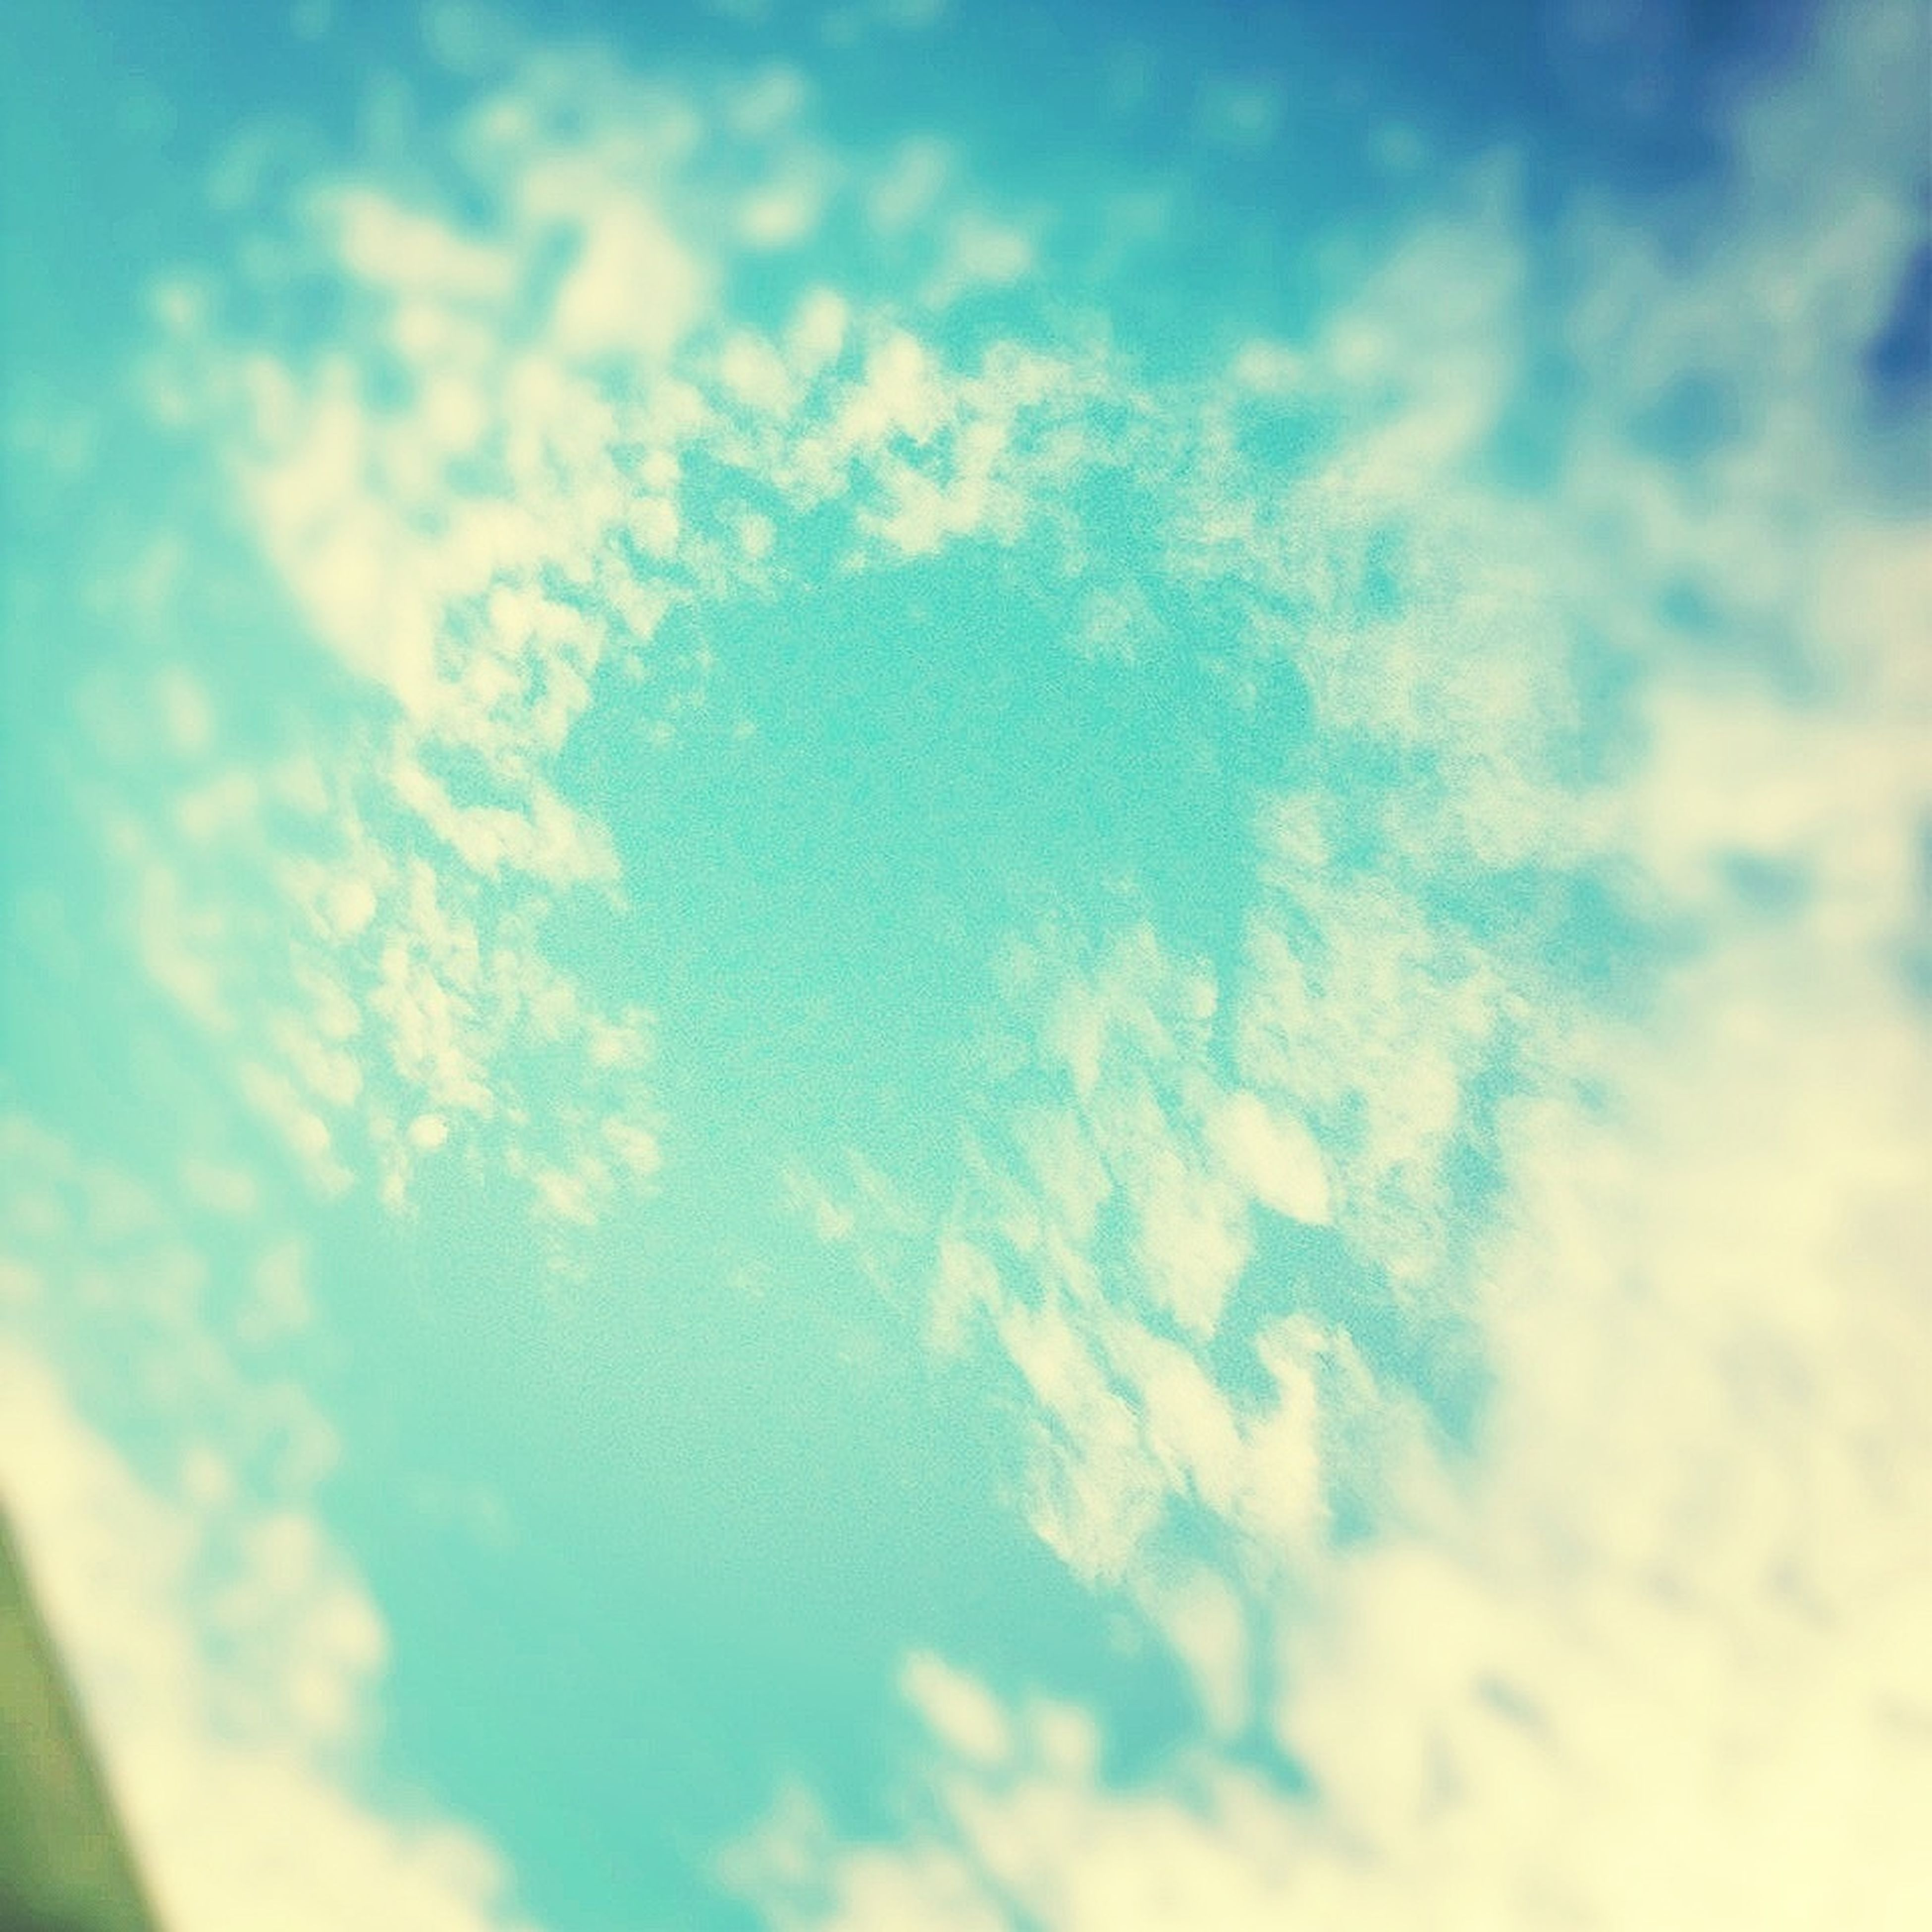 sky, low angle view, cloud - sky, blue, beauty in nature, nature, tranquility, backgrounds, scenics, cloud, cloudy, sky only, full frame, tranquil scene, cloudscape, outdoors, no people, idyllic, day, sunlight